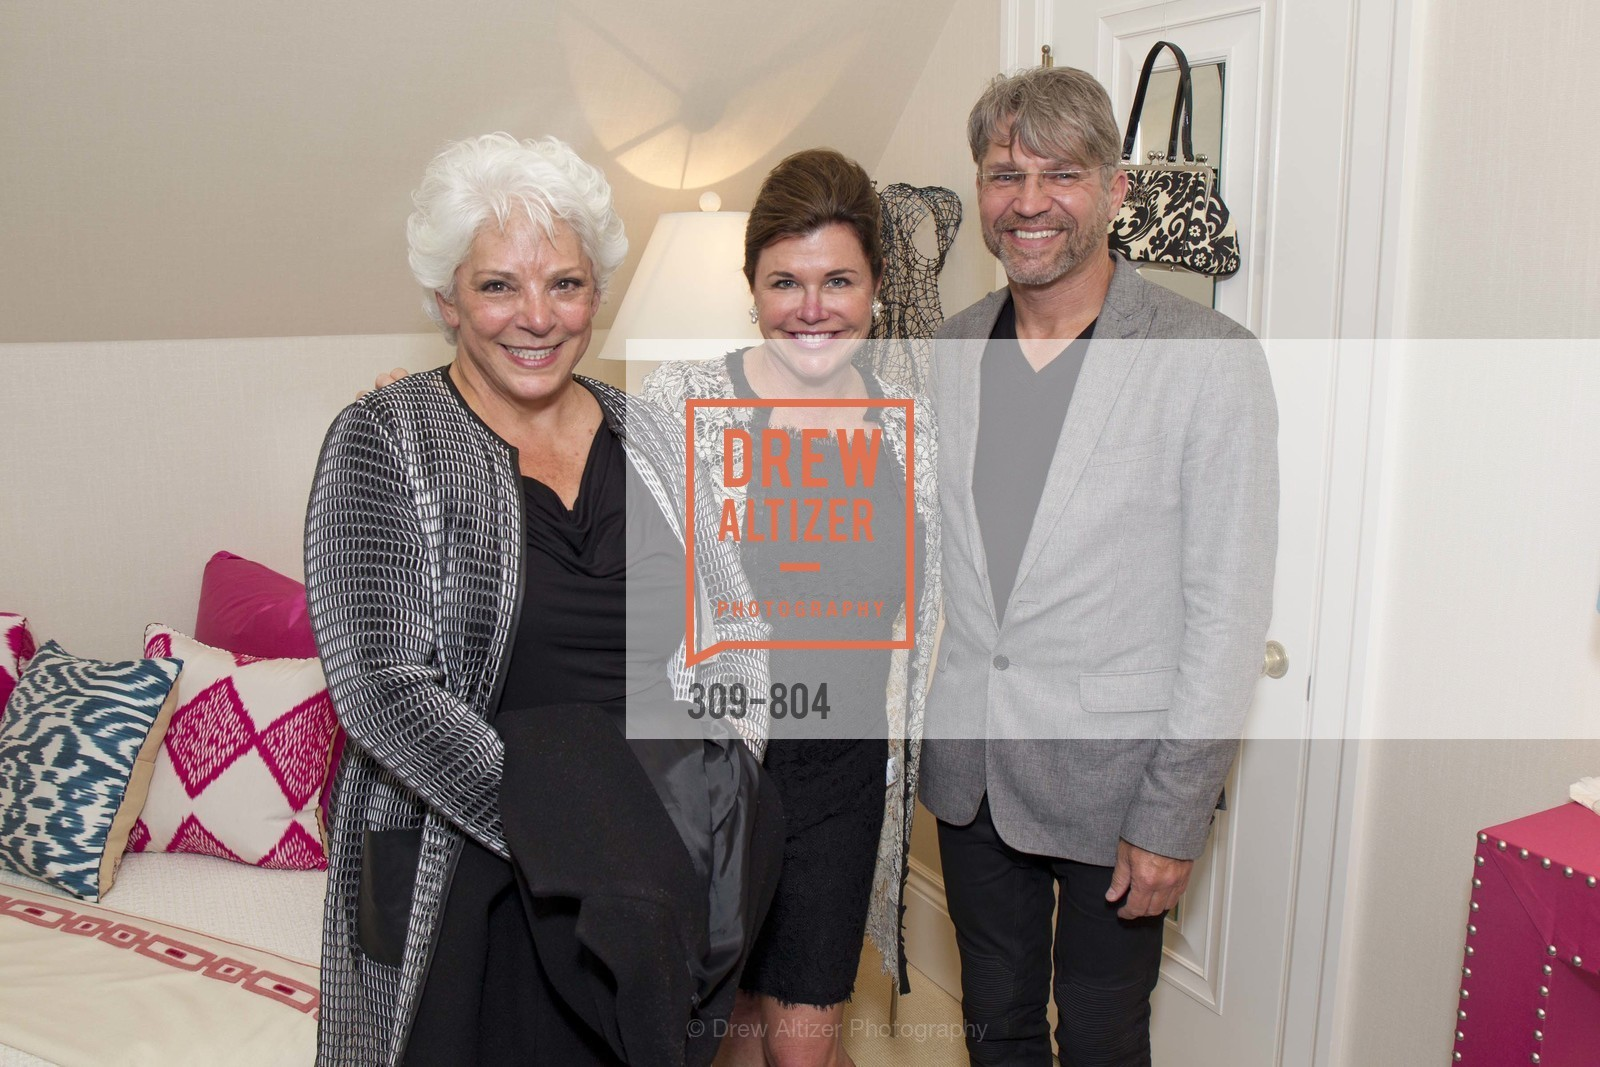 Marian Wheeler, Amy Weaver, James Hunter, San Francisco Decorator Showcase Opening Night Party, US, April 24th, 2015,Drew Altizer, Drew Altizer Photography, full-service agency, private events, San Francisco photographer, photographer california